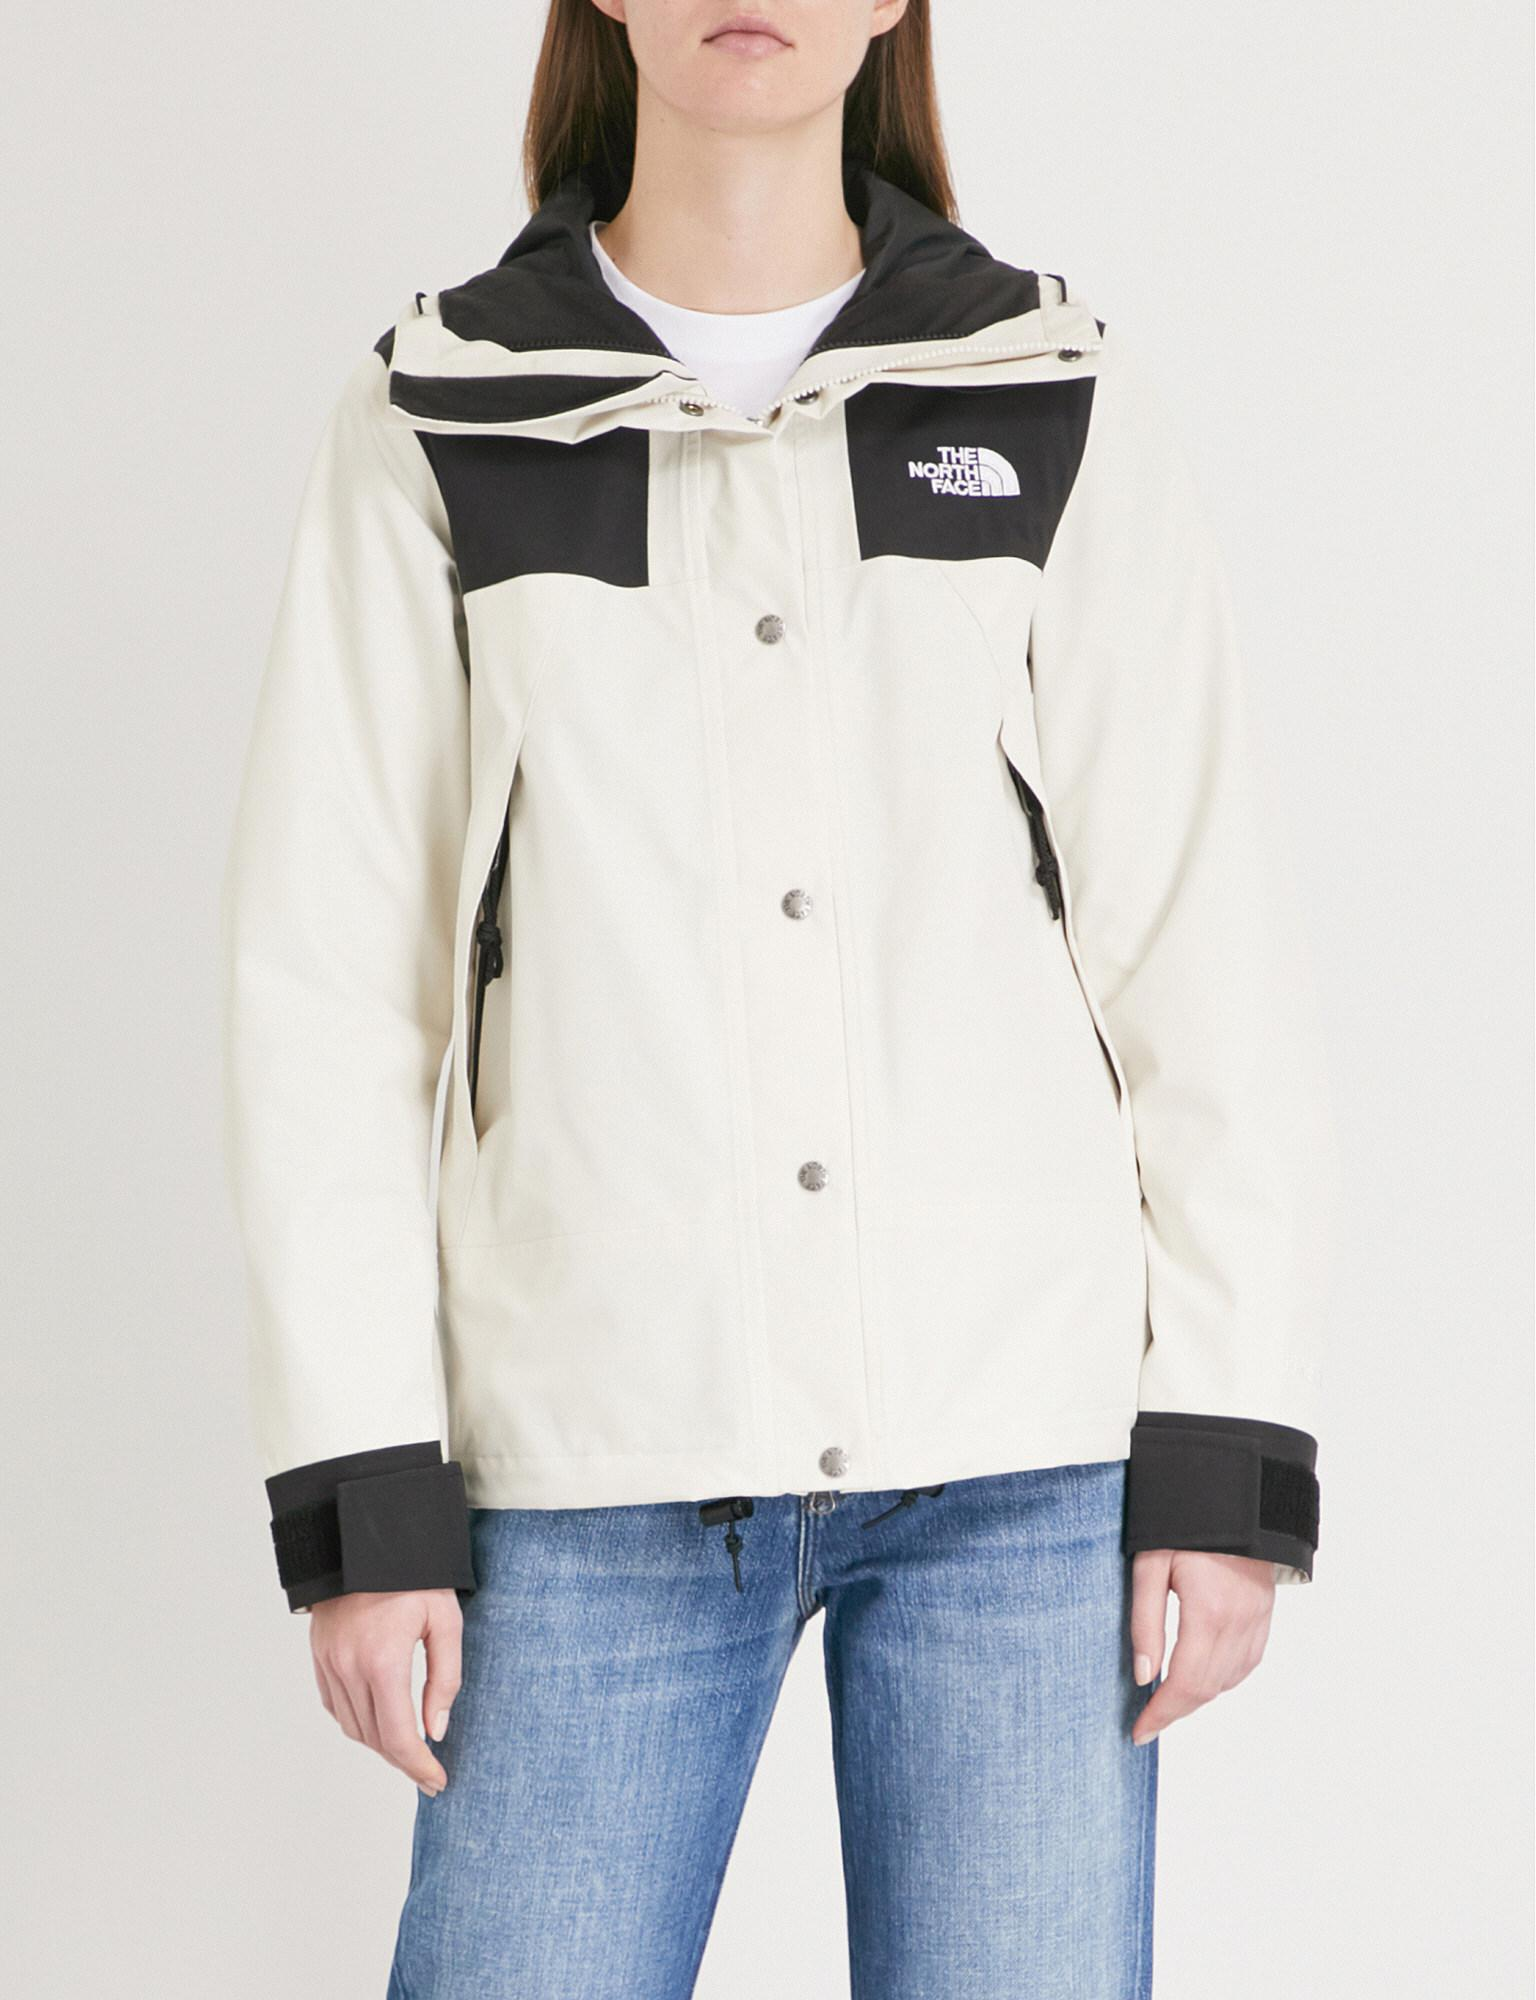 Lyst - The North Face Mountain Hooded Shell Jacket in White f7575faab